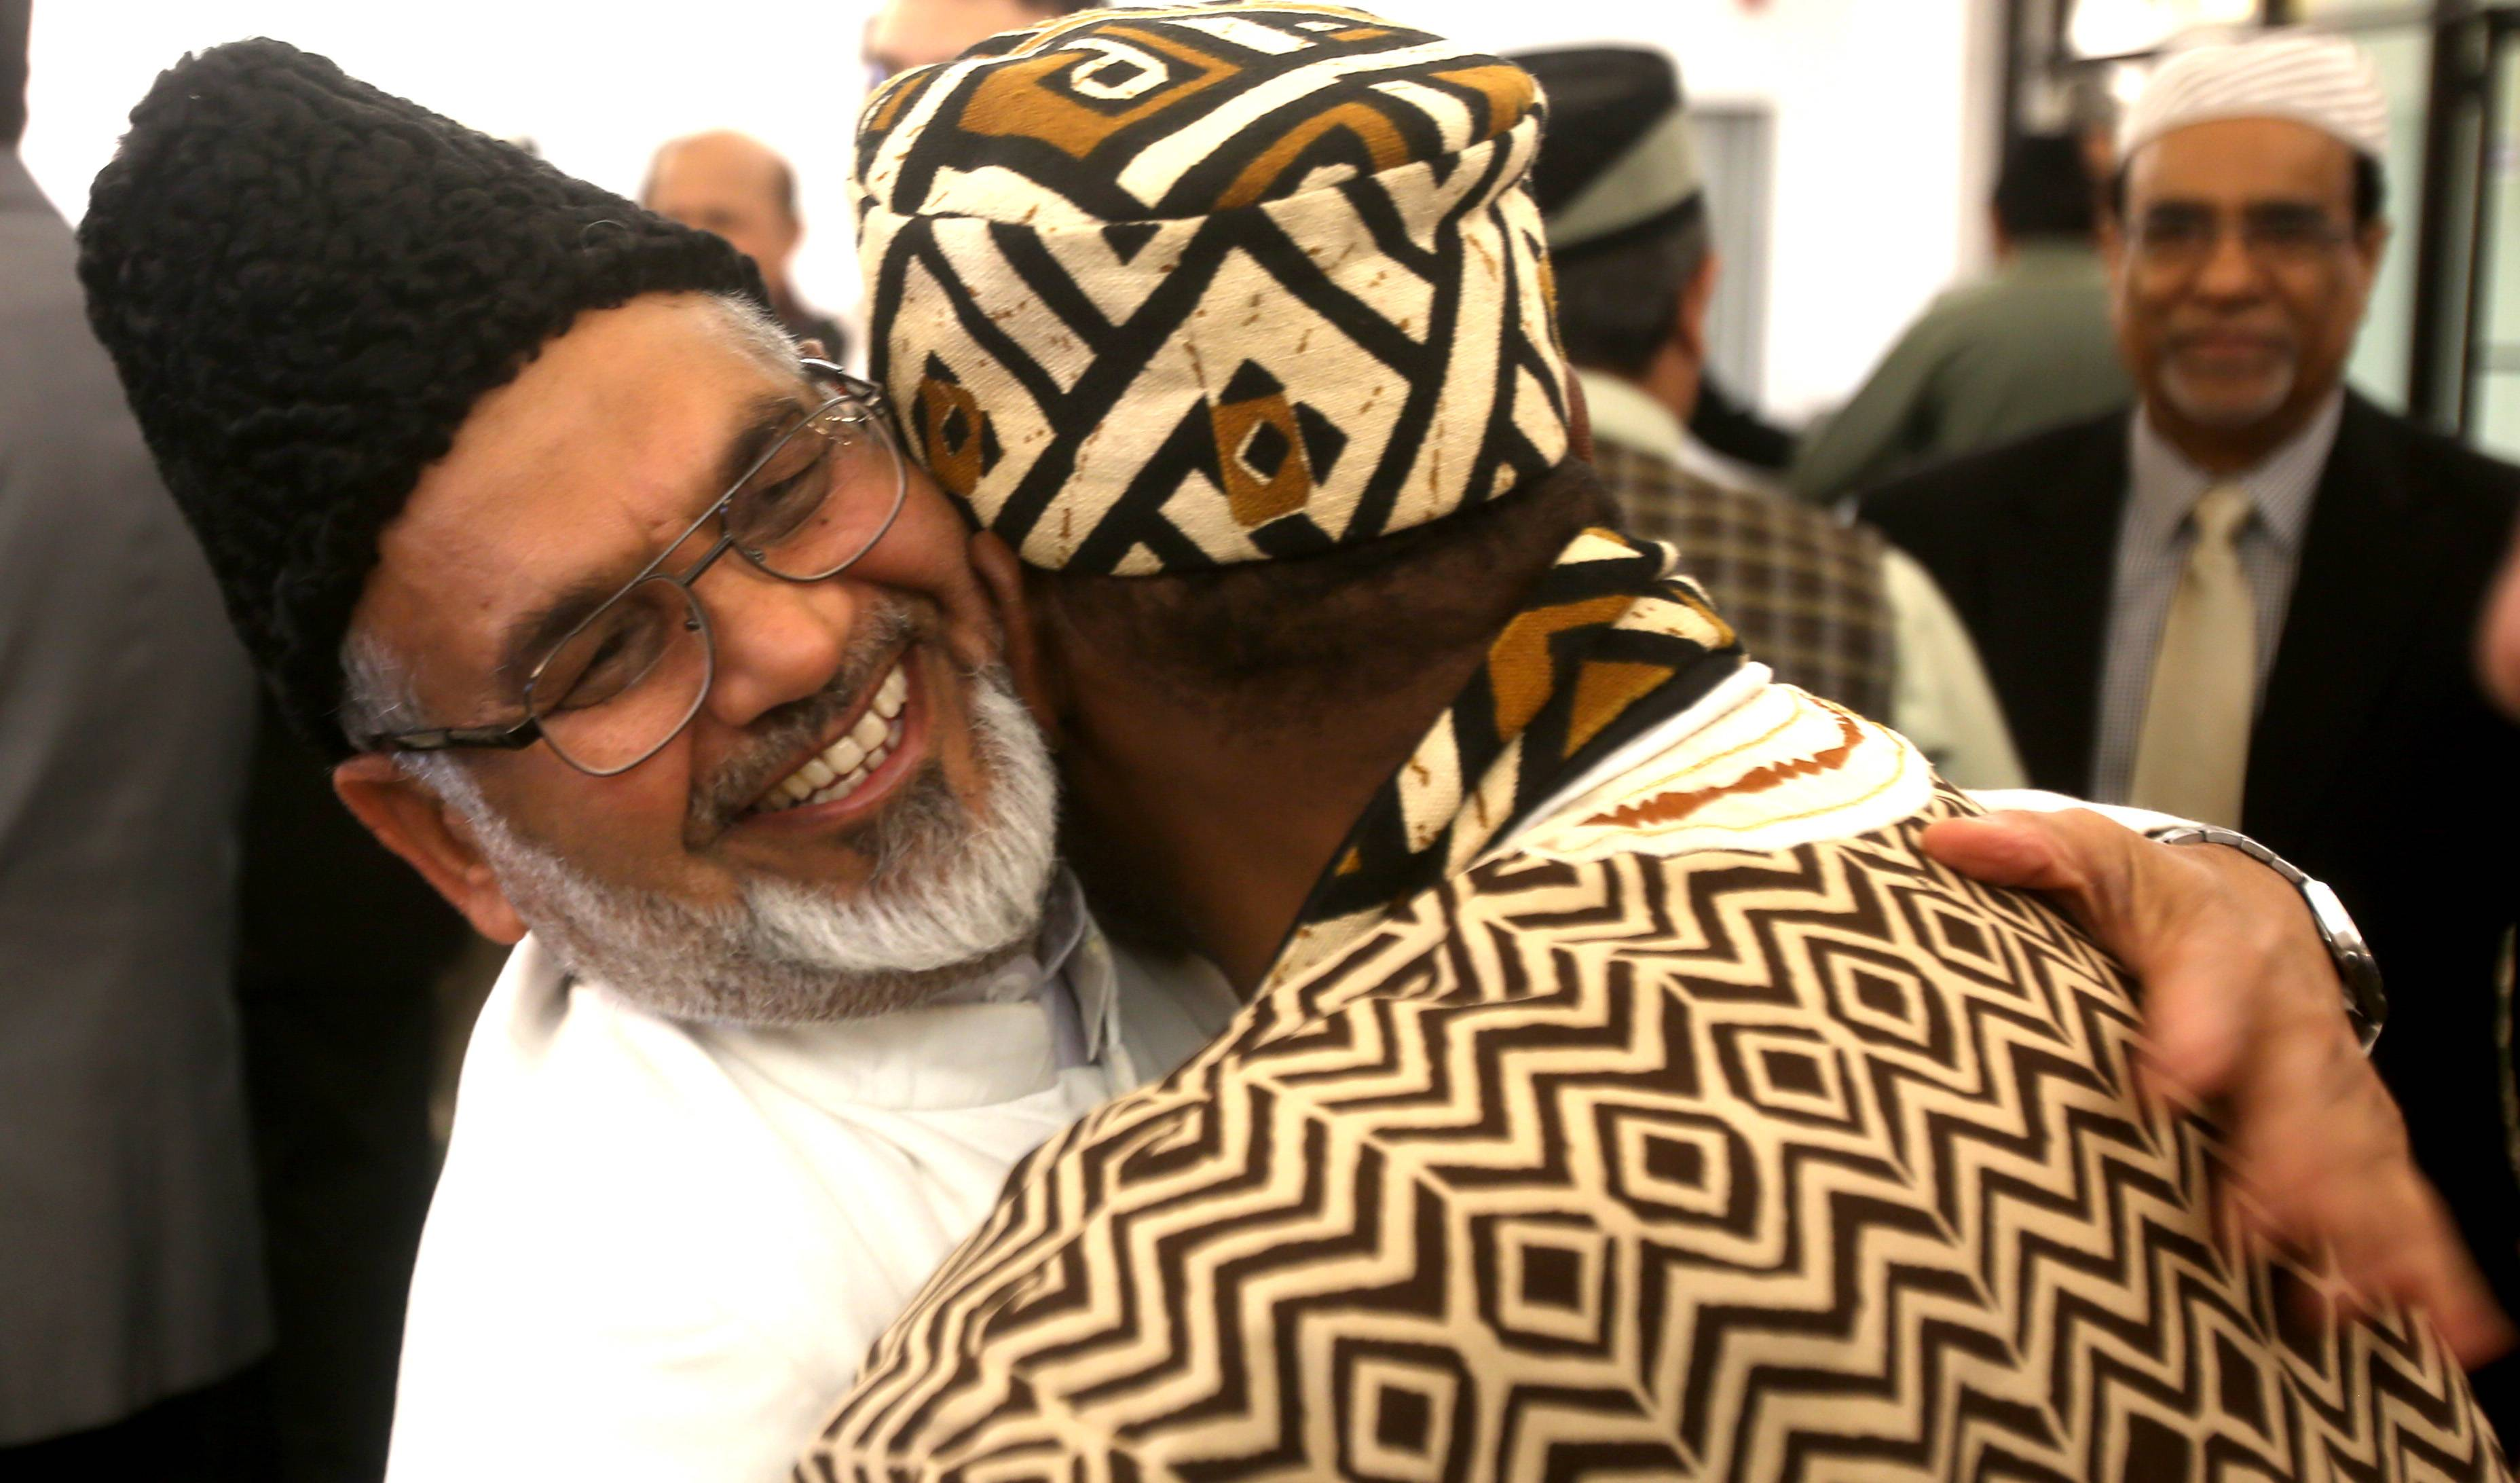 Following his sermon, Imam Shamshad Nasir greets fellow worshippers as the Ahmadiyya Muslim Community celebrates the end of Ramadan at its Glen Ellyn mosque.